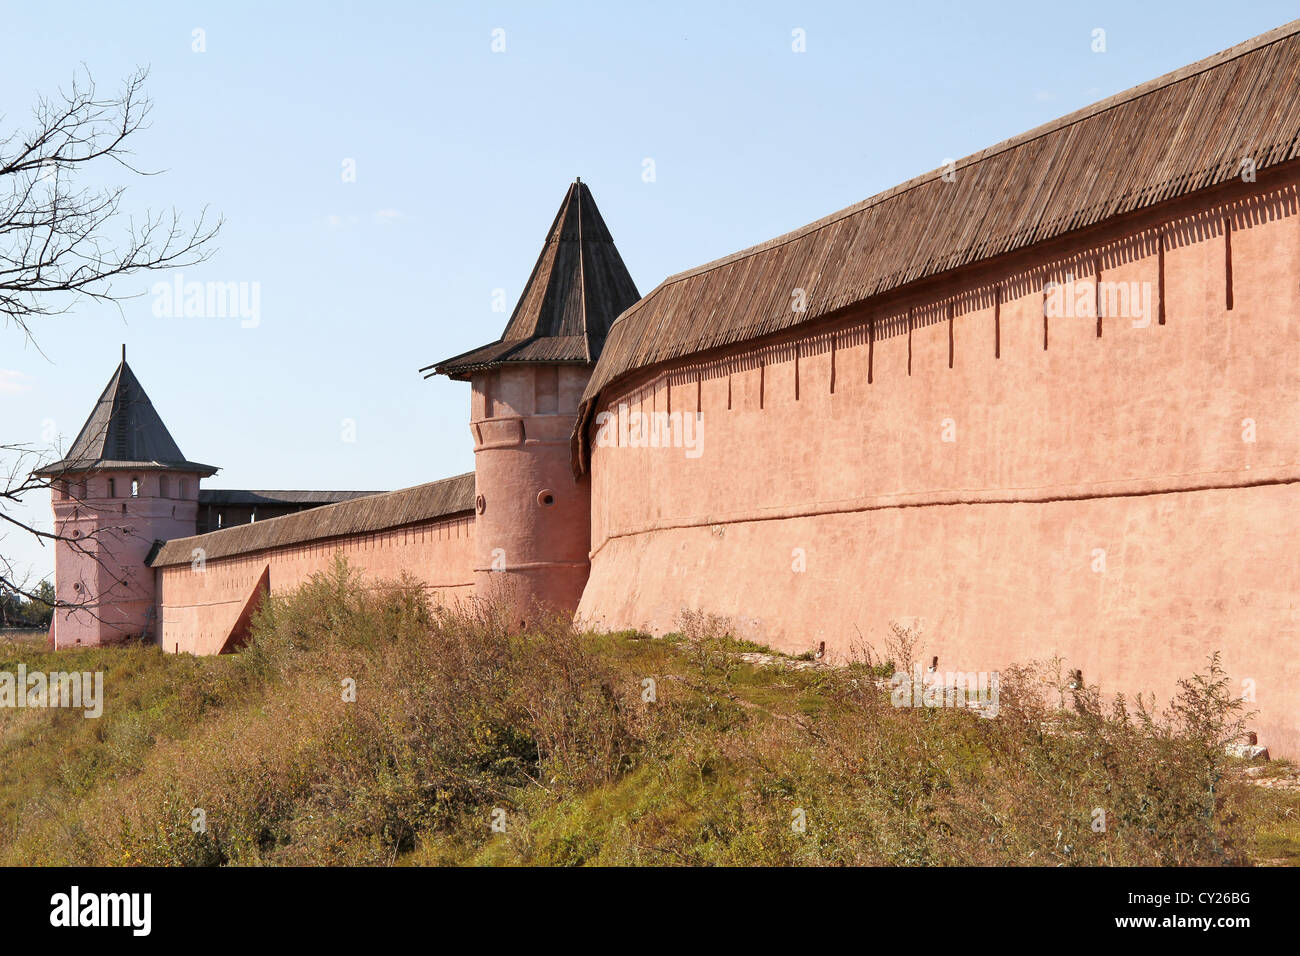 Wall of Monastery of Saint Euthymius in Suzdal, Russia - Stock Image